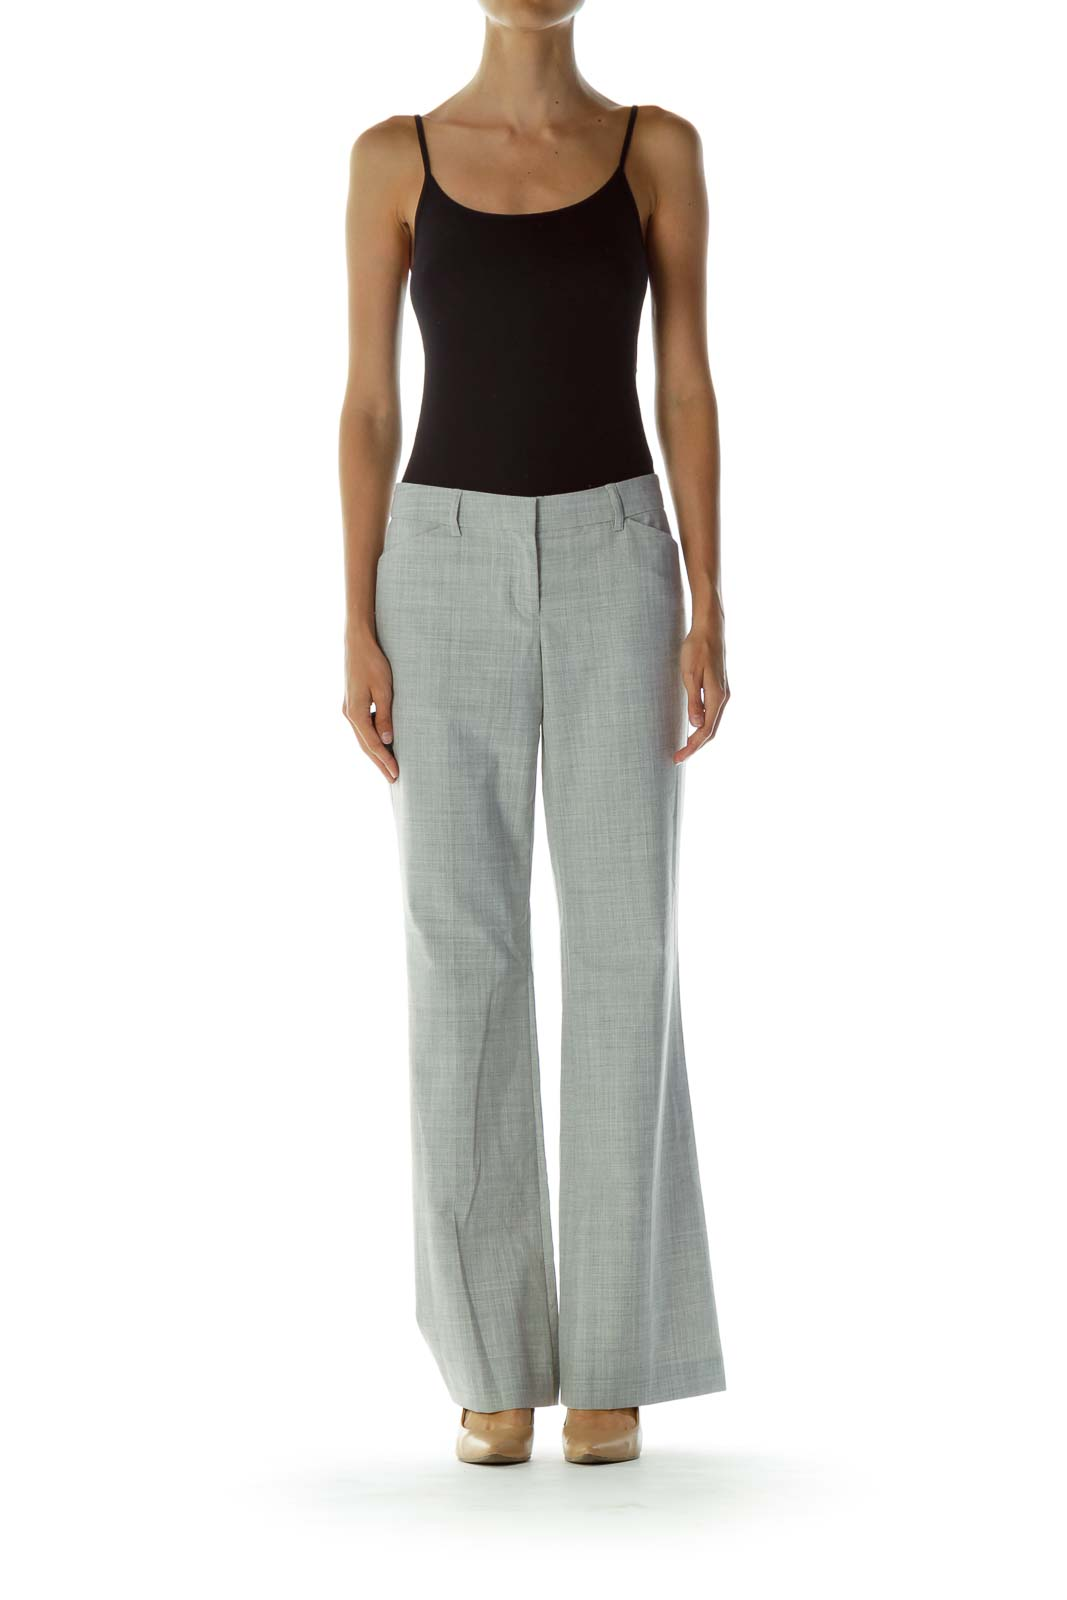 Gray Pocketed Zipper-fly Wide-Leg Pants